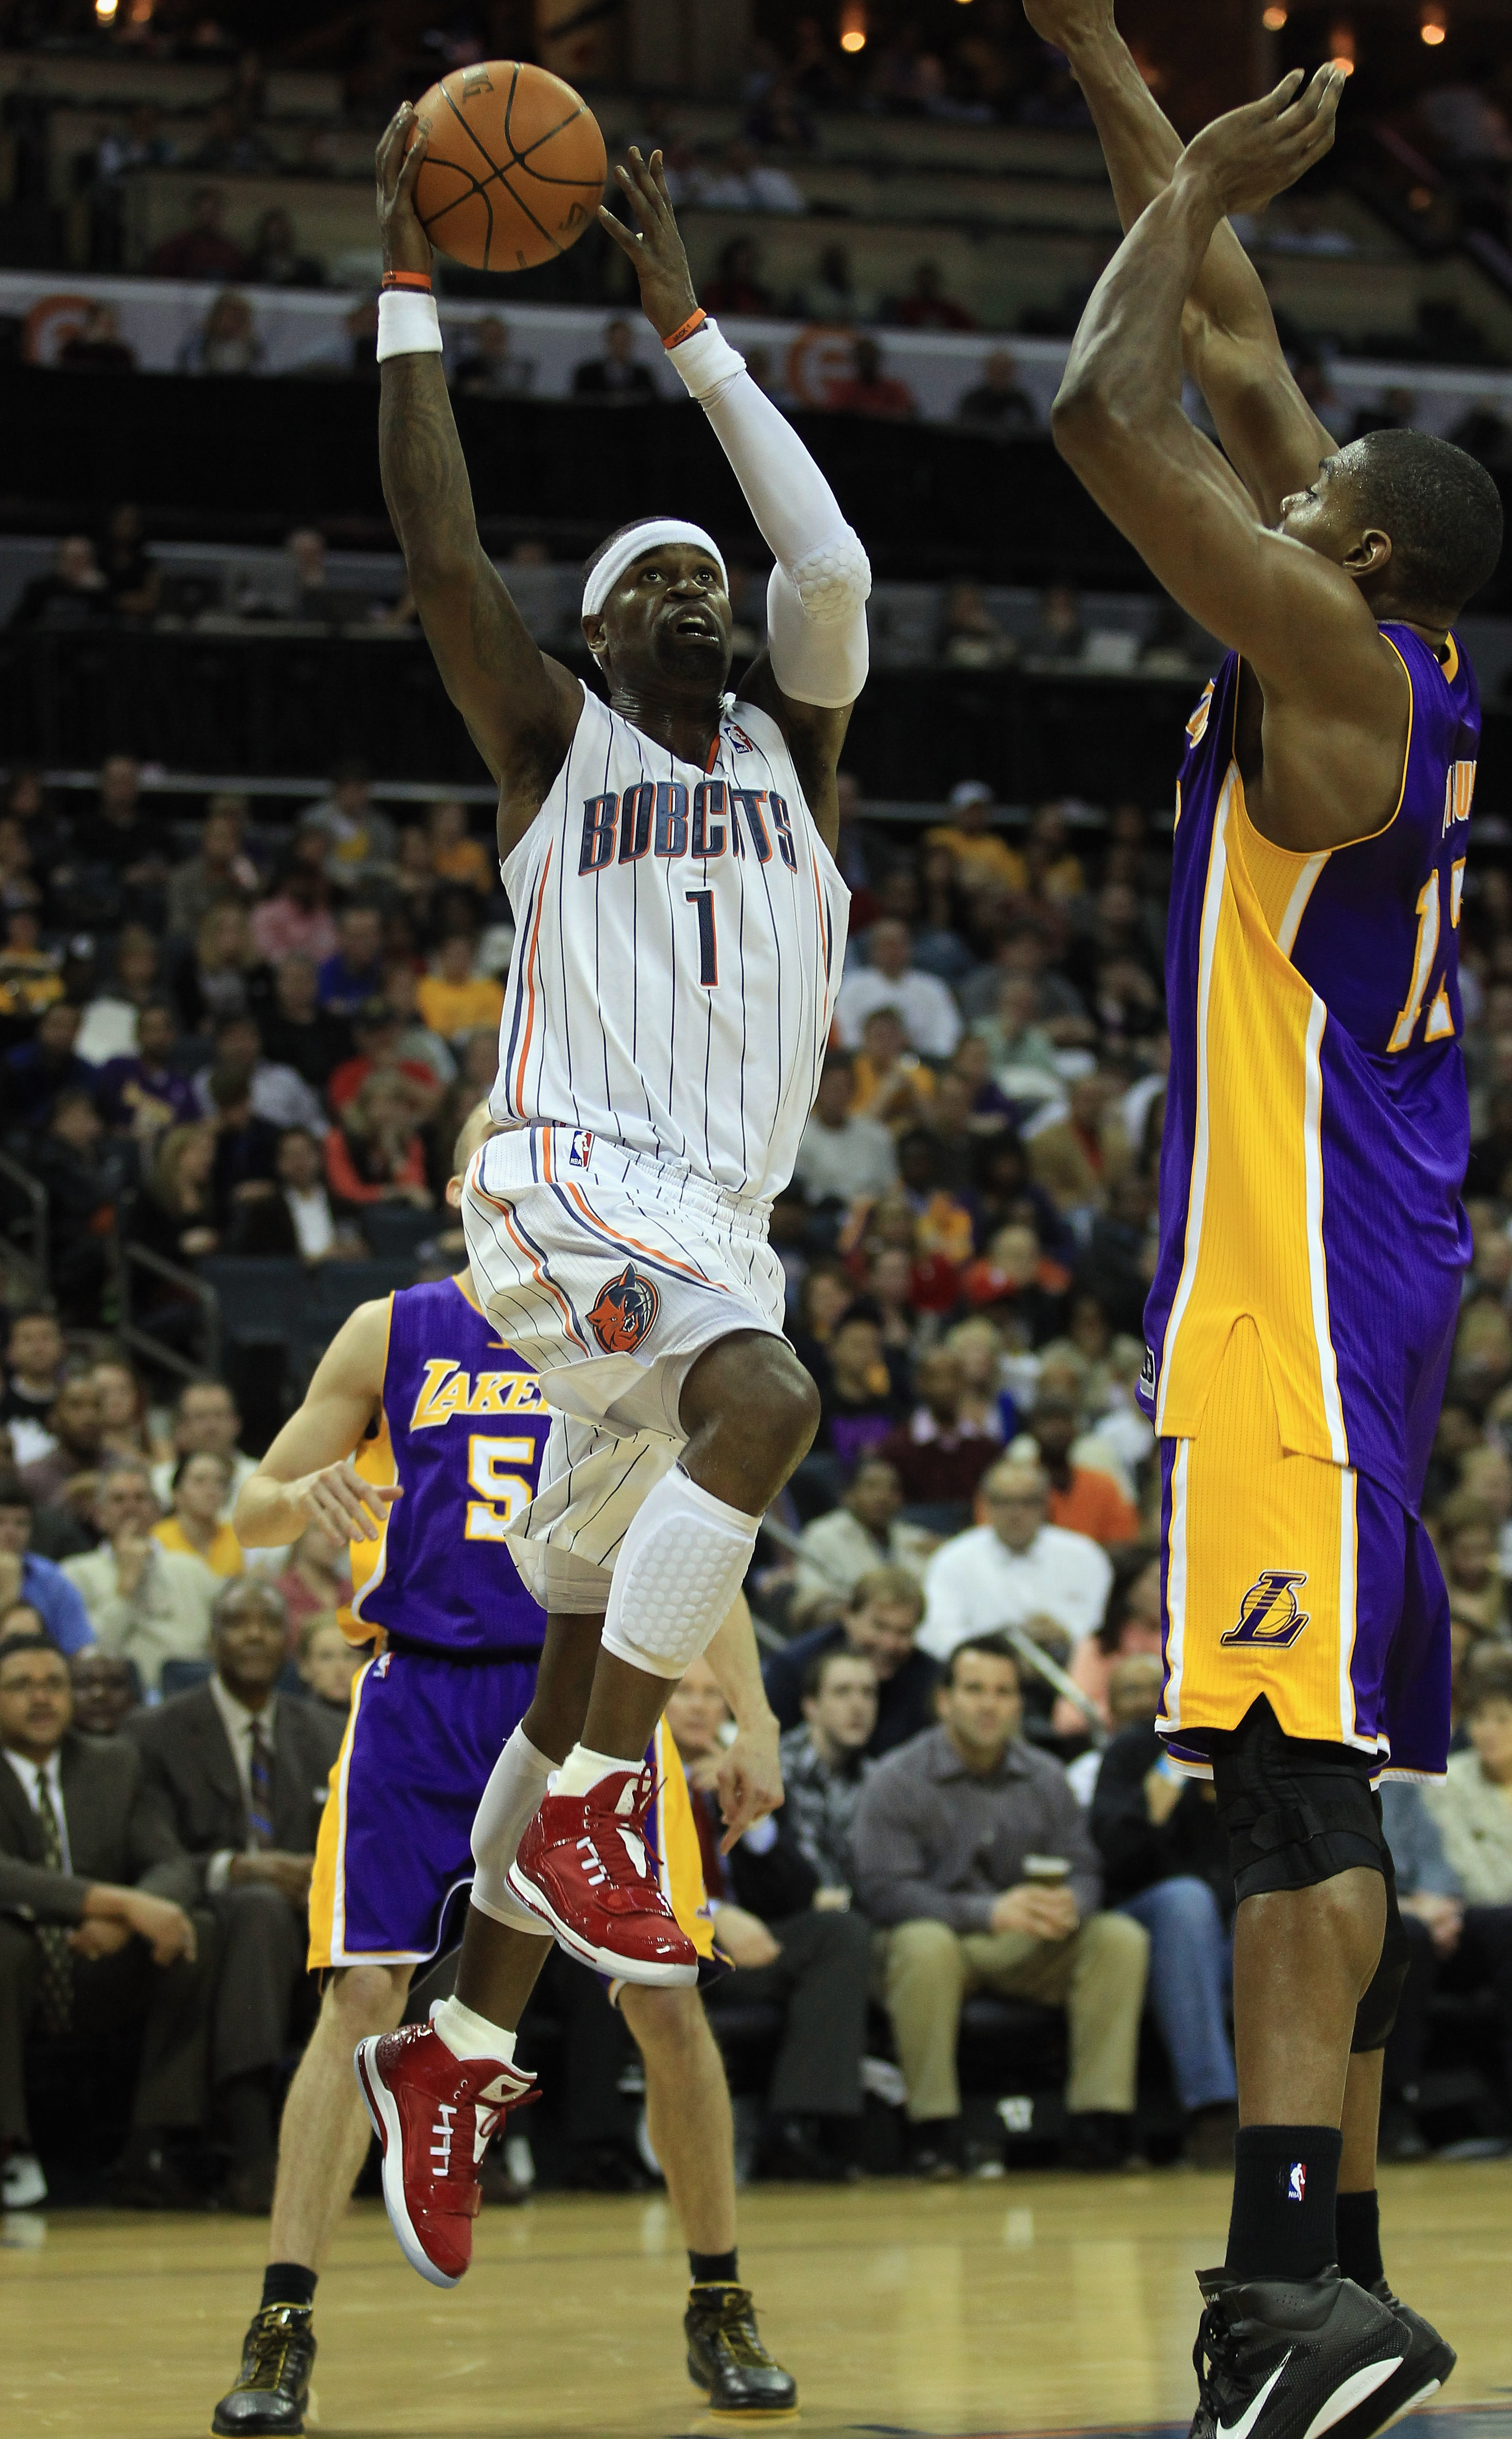 CHARLOTTE, NC - FEBRUARY 14:  Andrew Bynum #17 of the Los Angeles Lakers tries to stop Stephen Jackson #1 of the Charlotte Bobcats during their game at Time Warner Cable Arena on February 14, 2011 in Charlotte, North Carolina. NOTE TO USER: User expressly